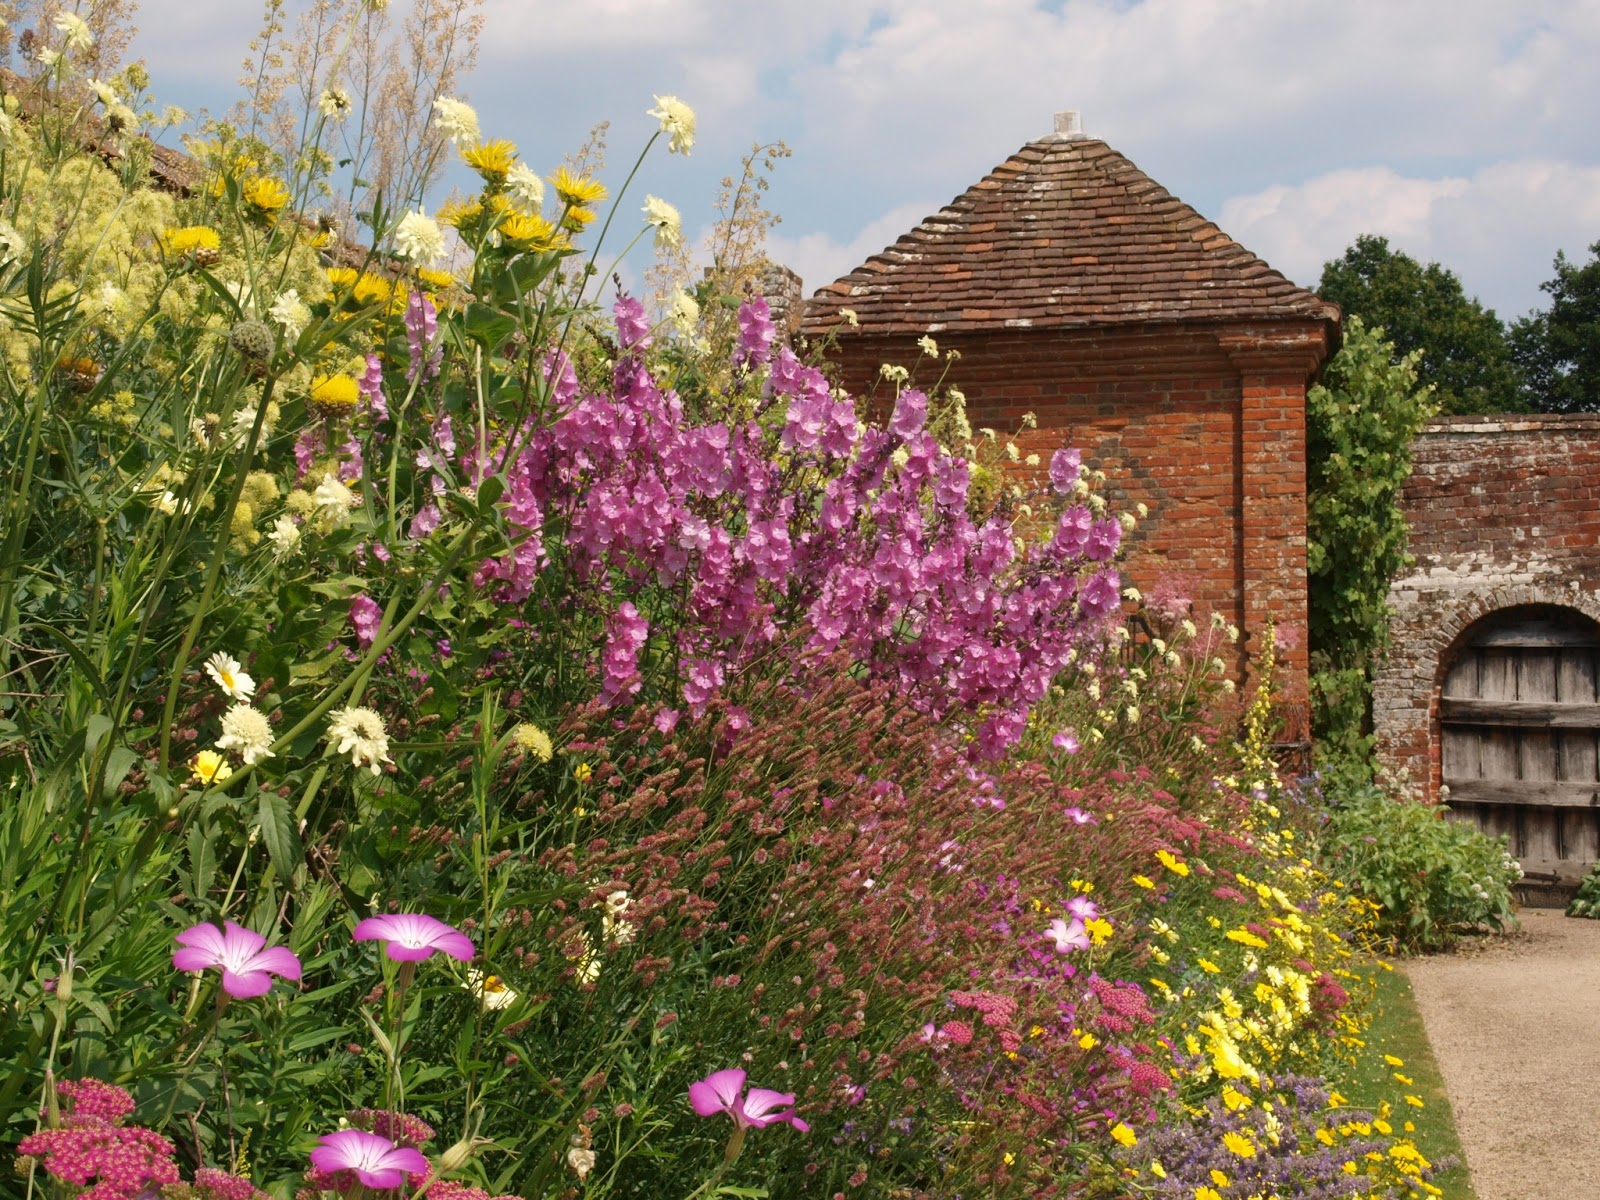 Ragged Robin\'s Nature Notes: A Visit to Packwood House and Gardens